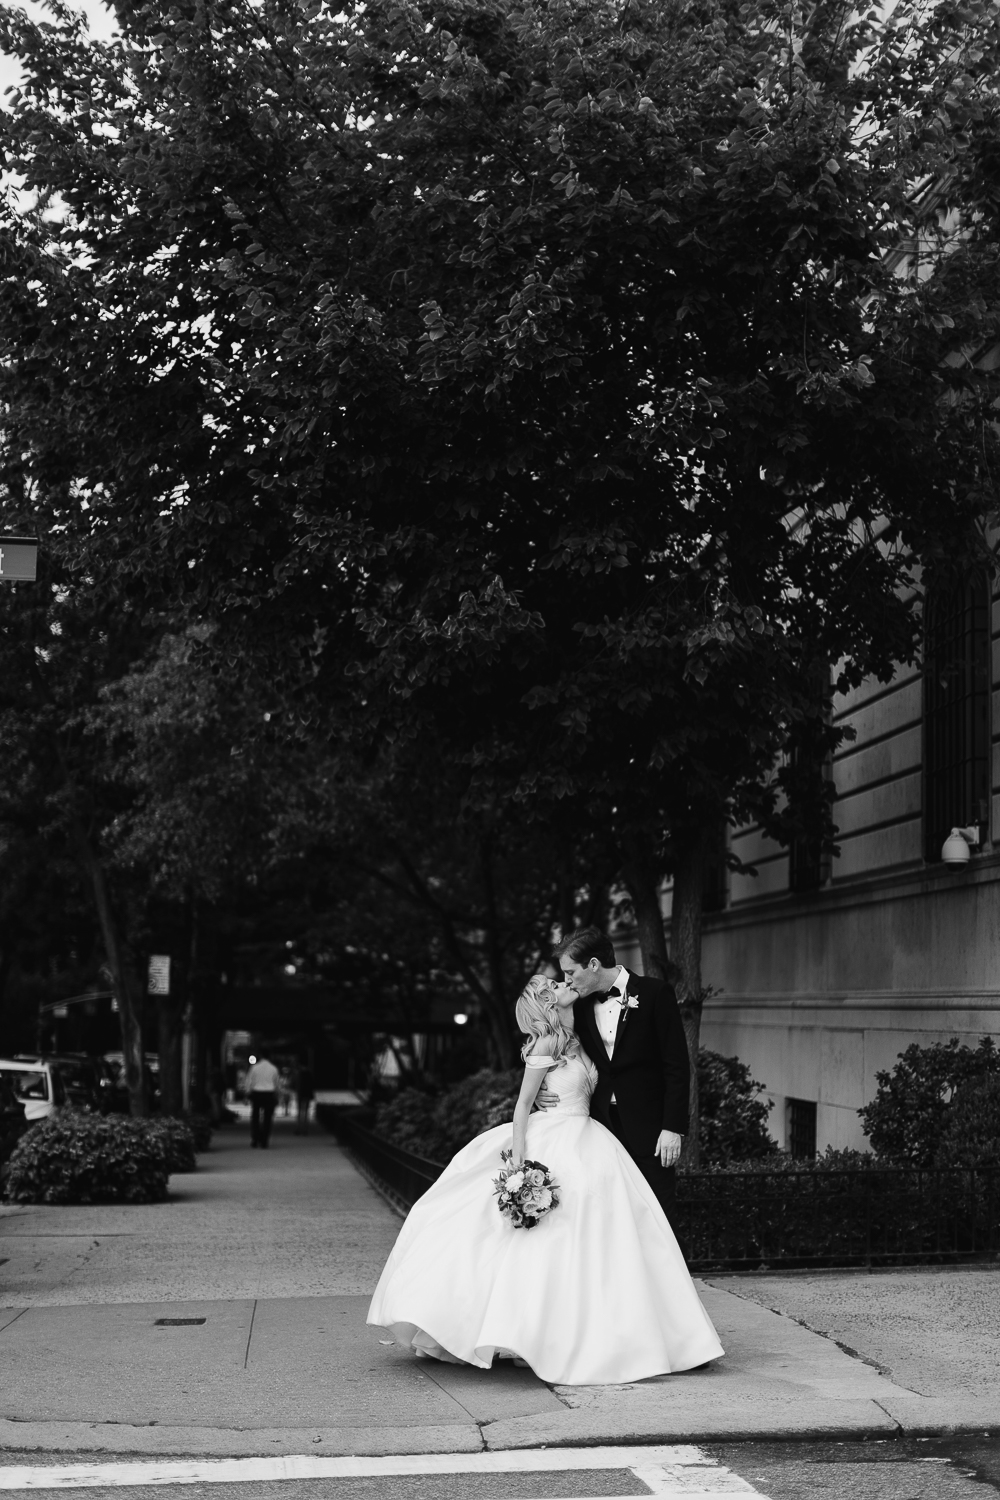 Black and white photos of a bride and groom kissing on Manhattan streets.